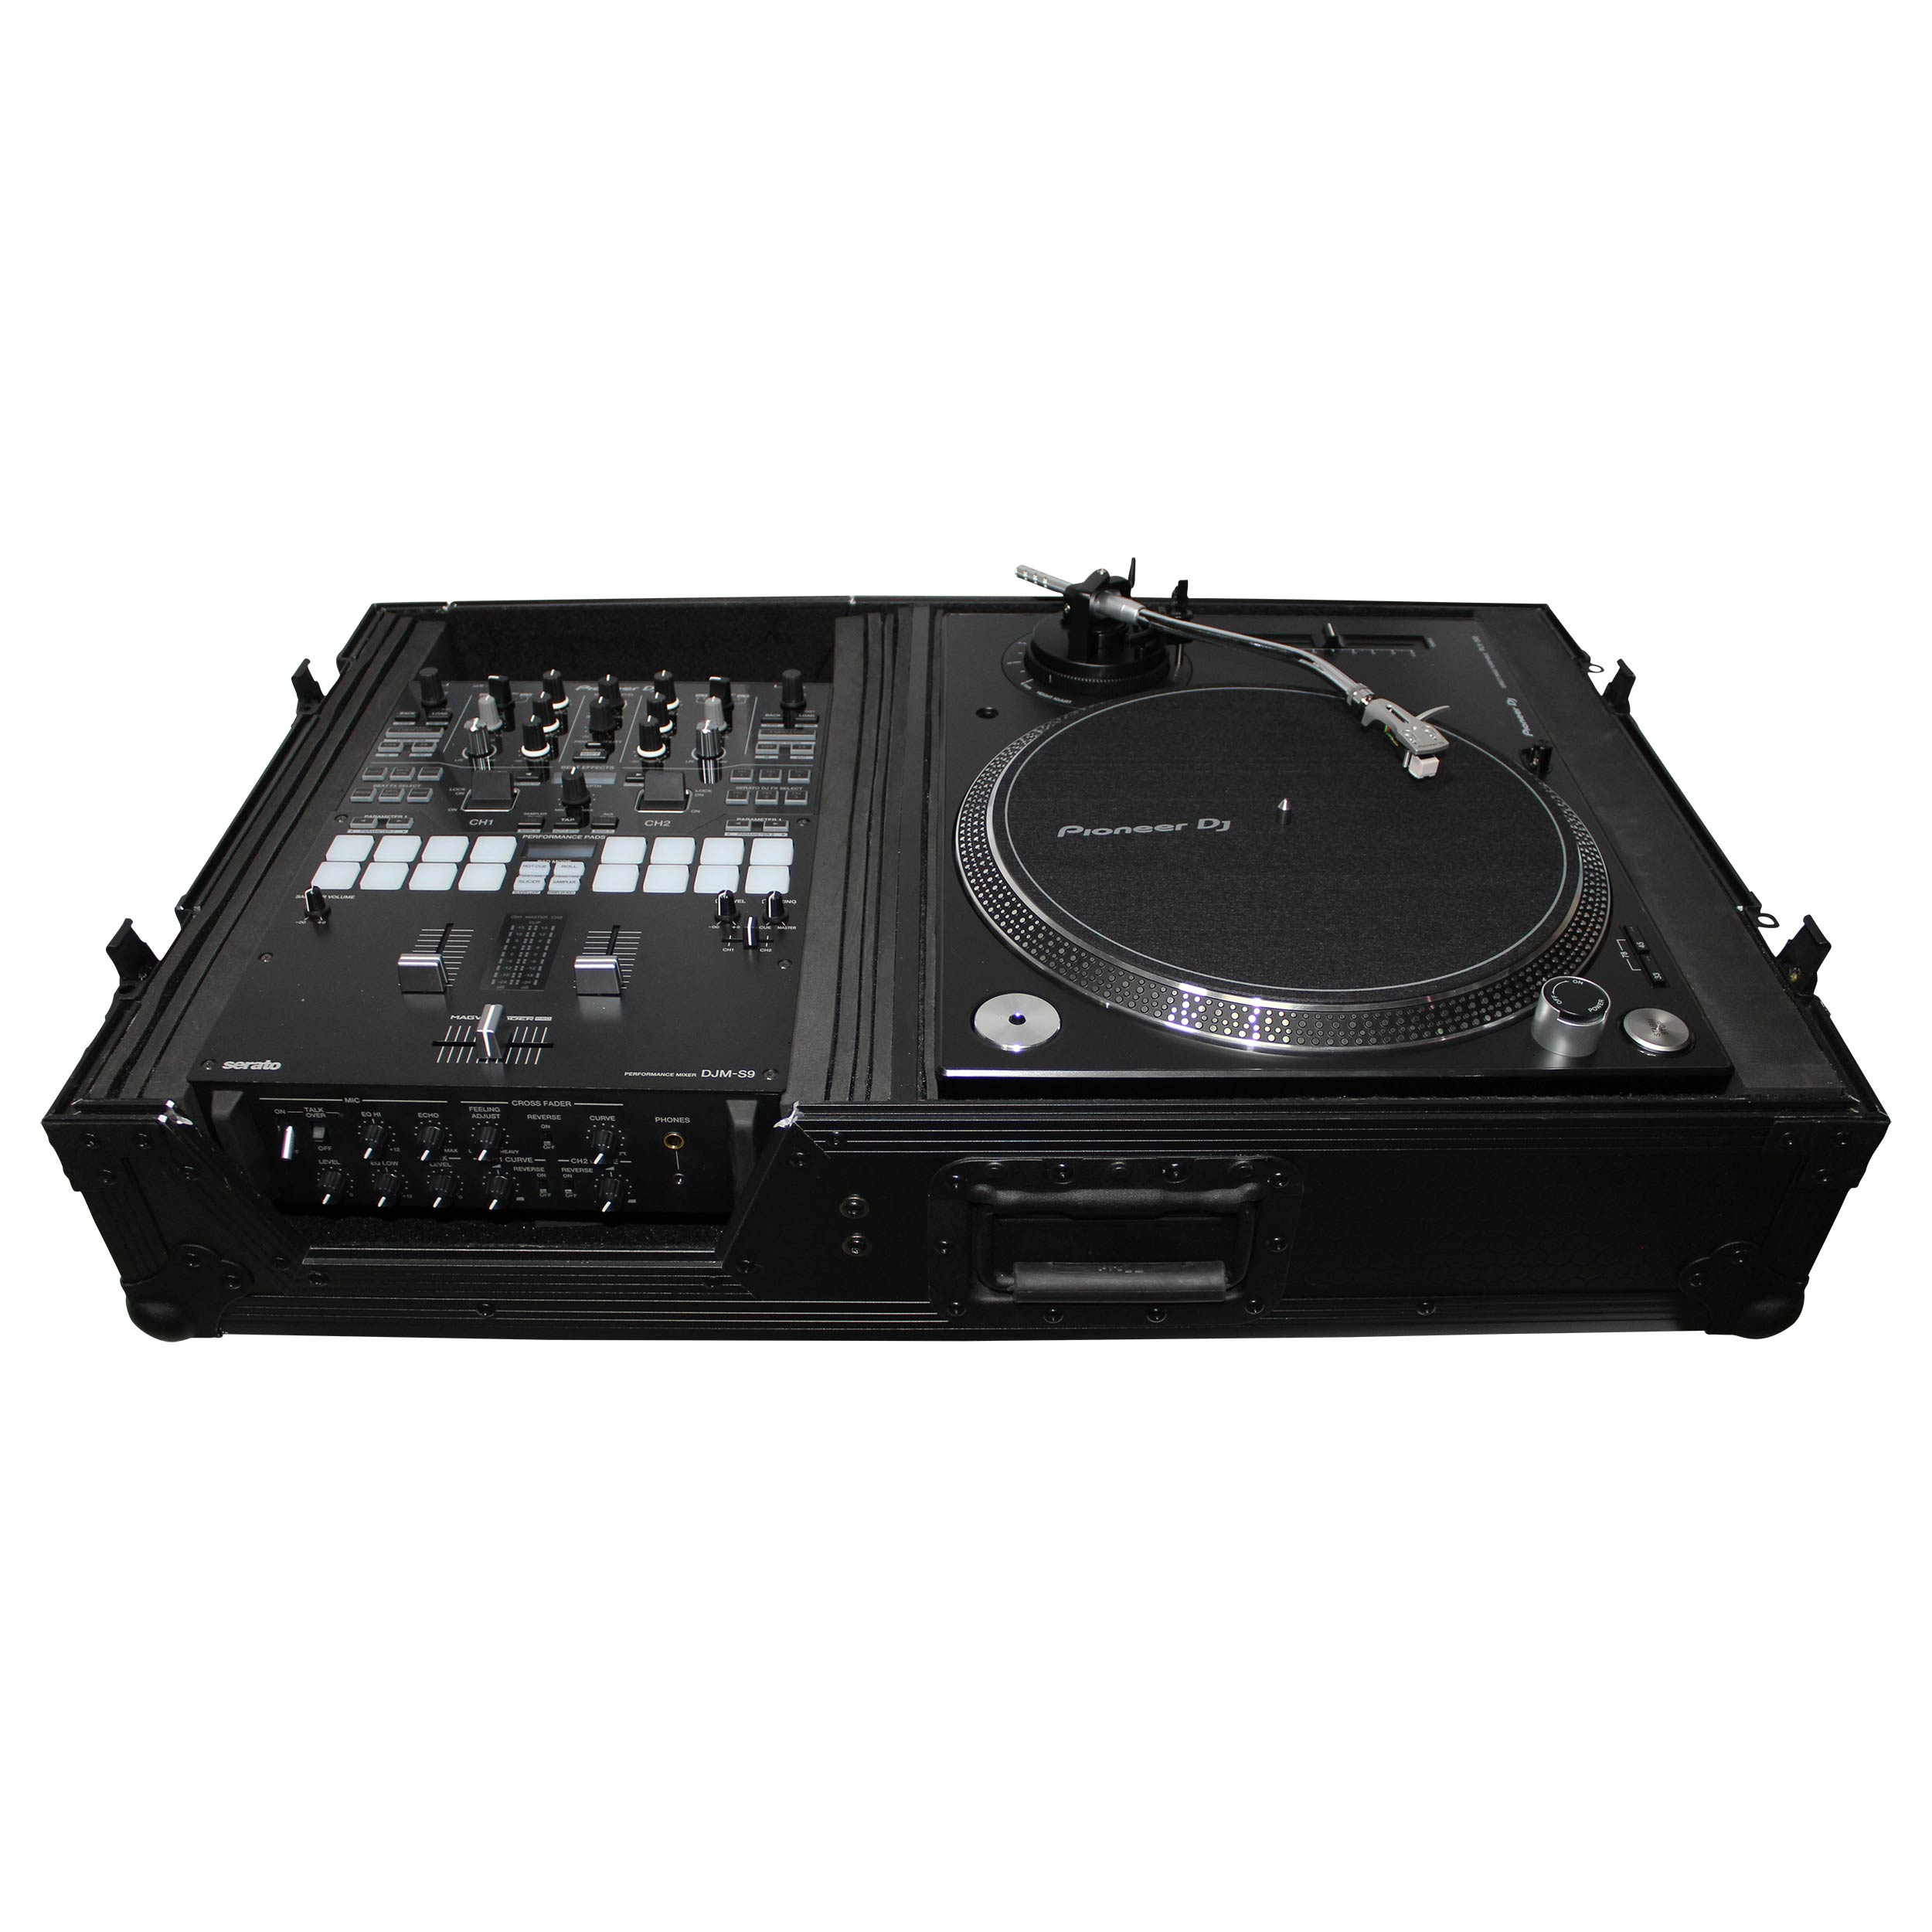 pioneer dj djm s9 mixer free prox black flight case bundle agiprodj. Black Bedroom Furniture Sets. Home Design Ideas